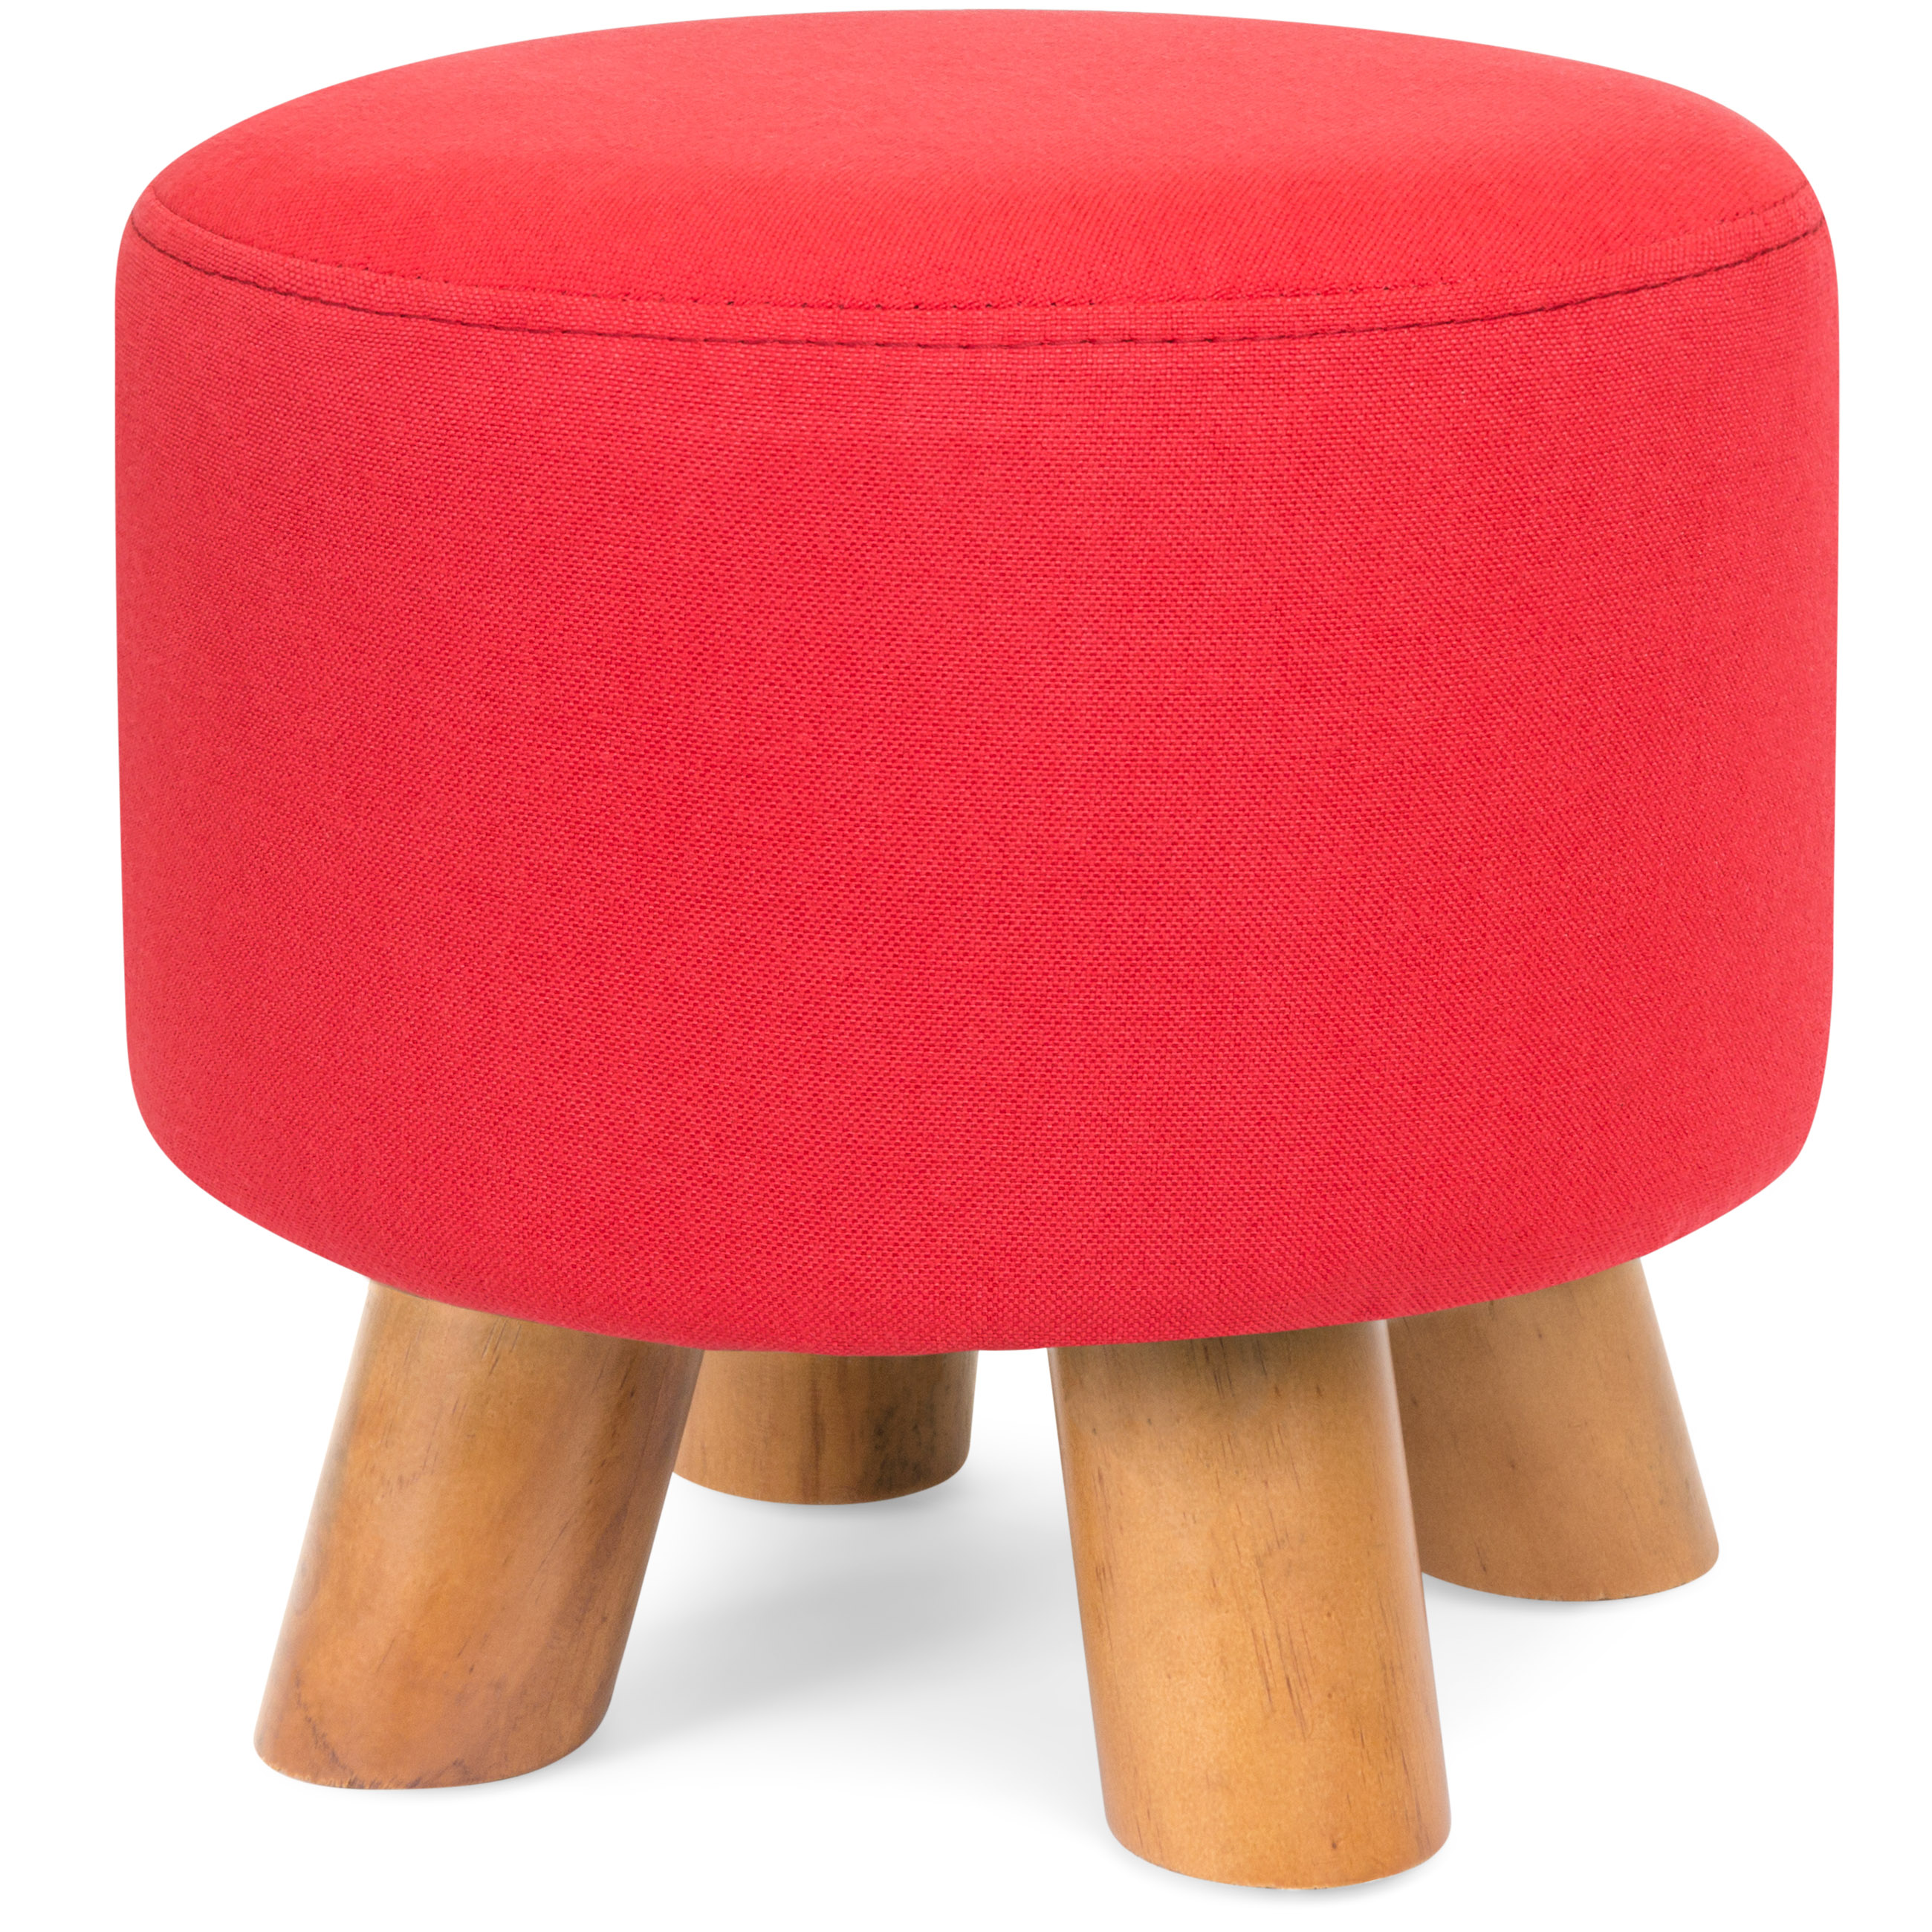 Best Choice Products Upholstered Padded Lightweight Pouf Ottoman Footrest Stool w/ Removable Linen Cover, Non-Skid Wooden Legs, 440lbs Weight Capacity - Red